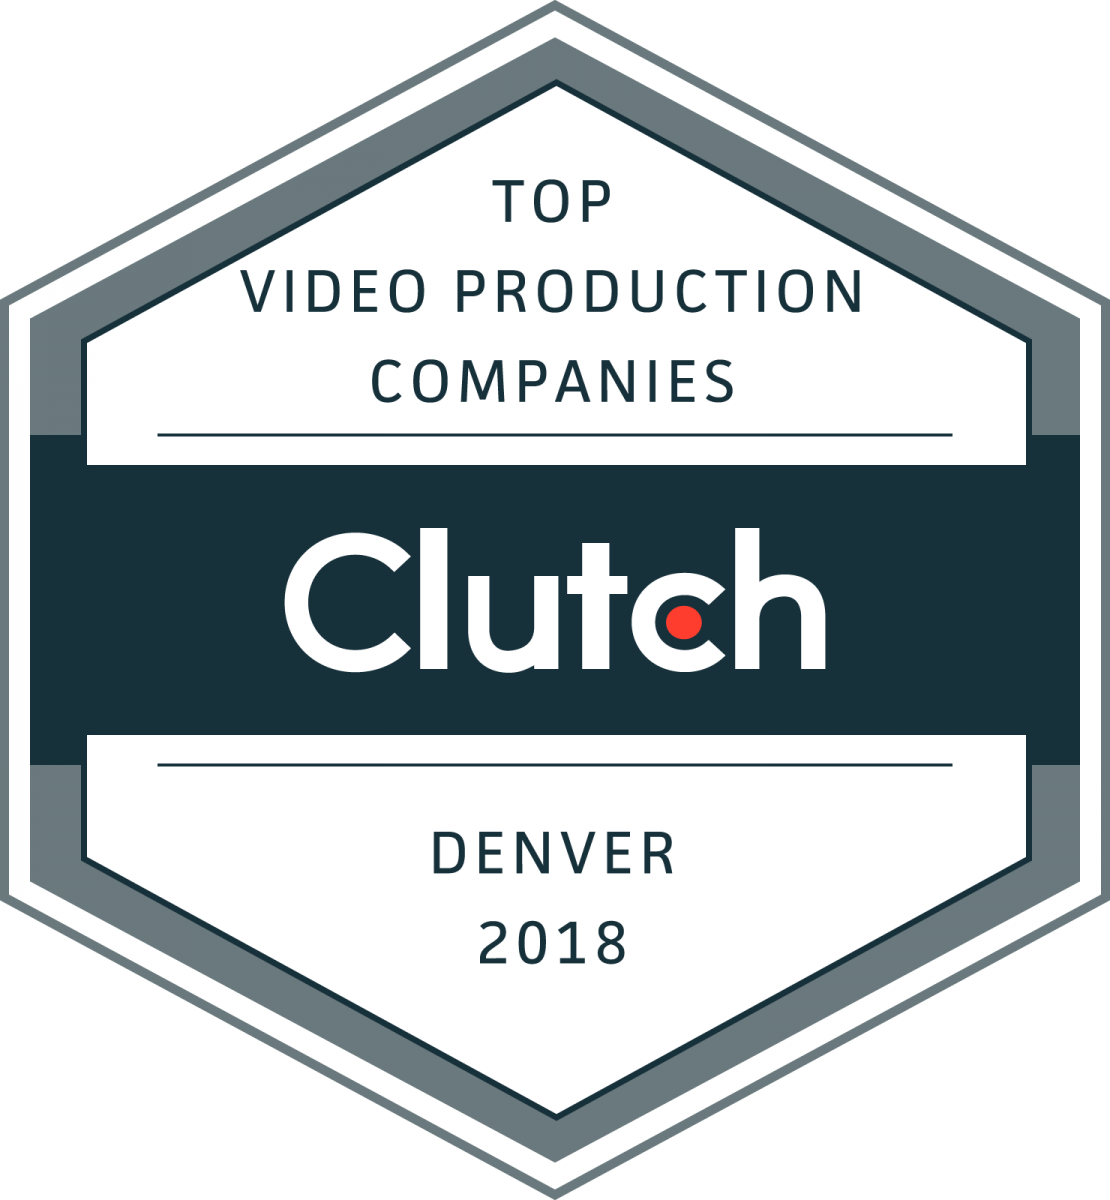 Video_Production_Companies_Denver_2018_0.png